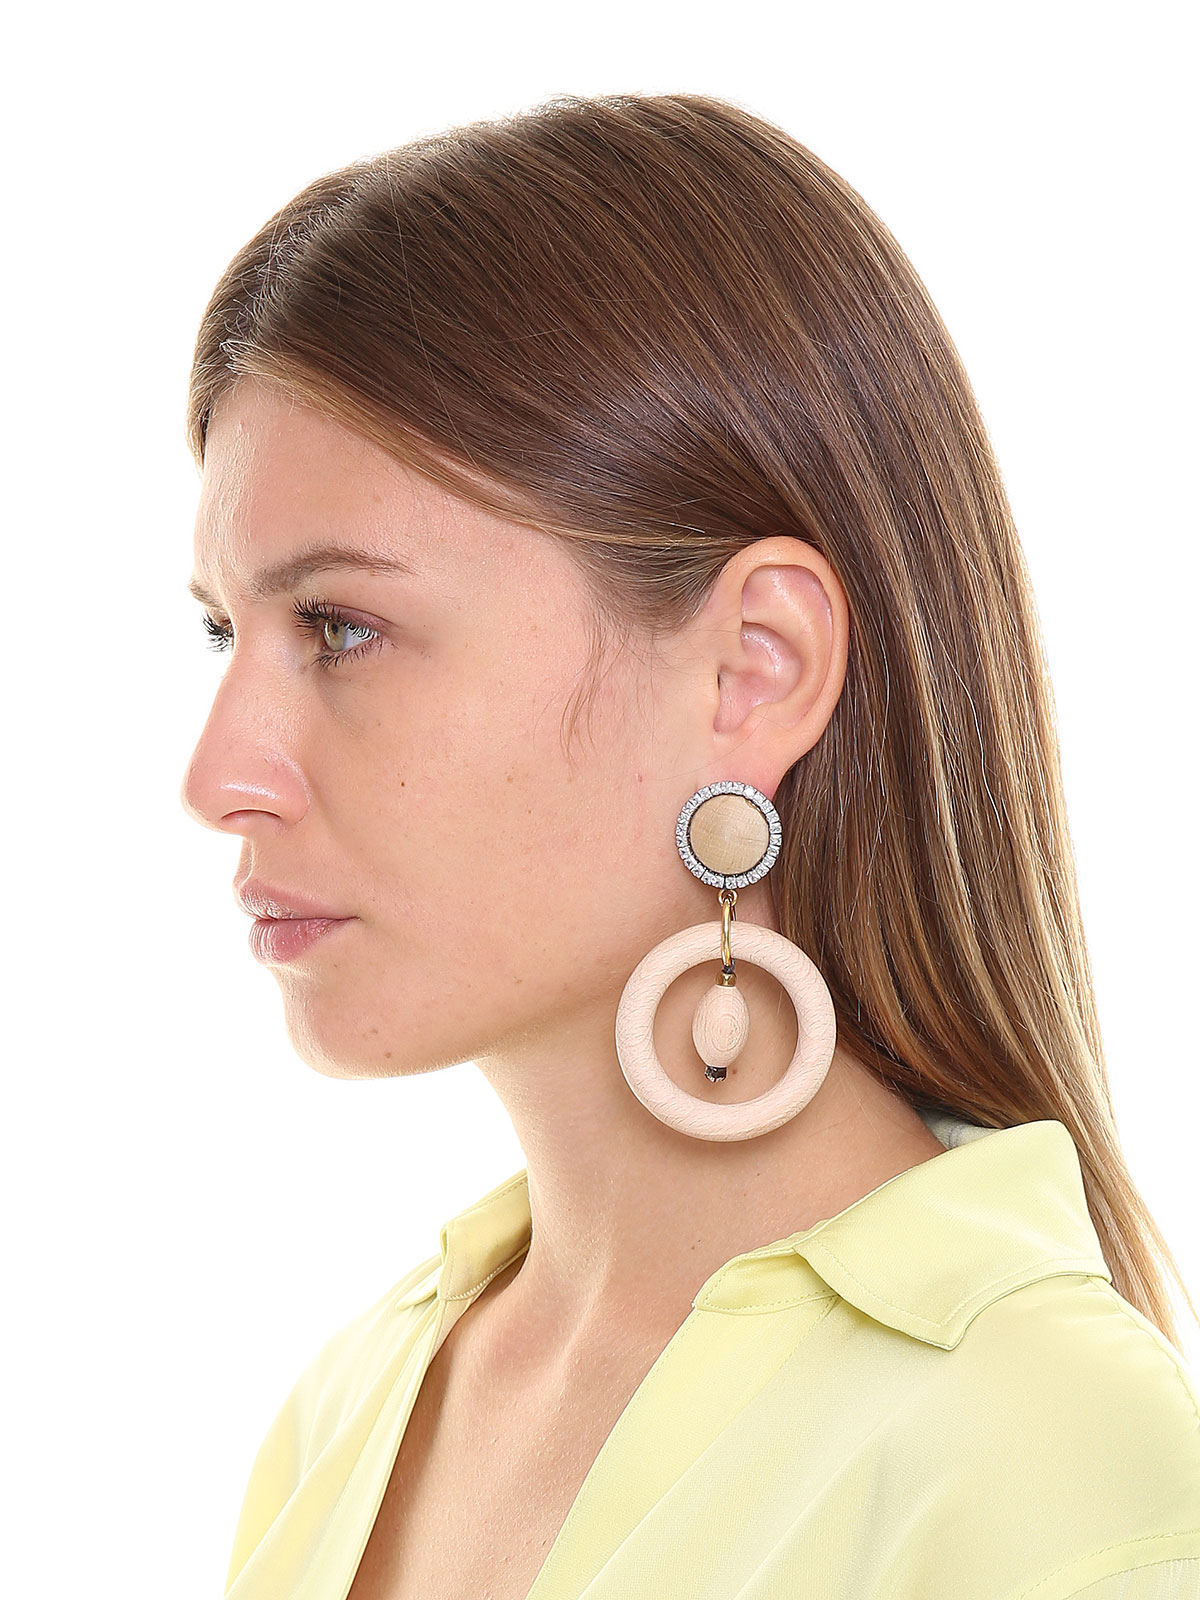 Wood cabochon earrings with wood hoops and crystals